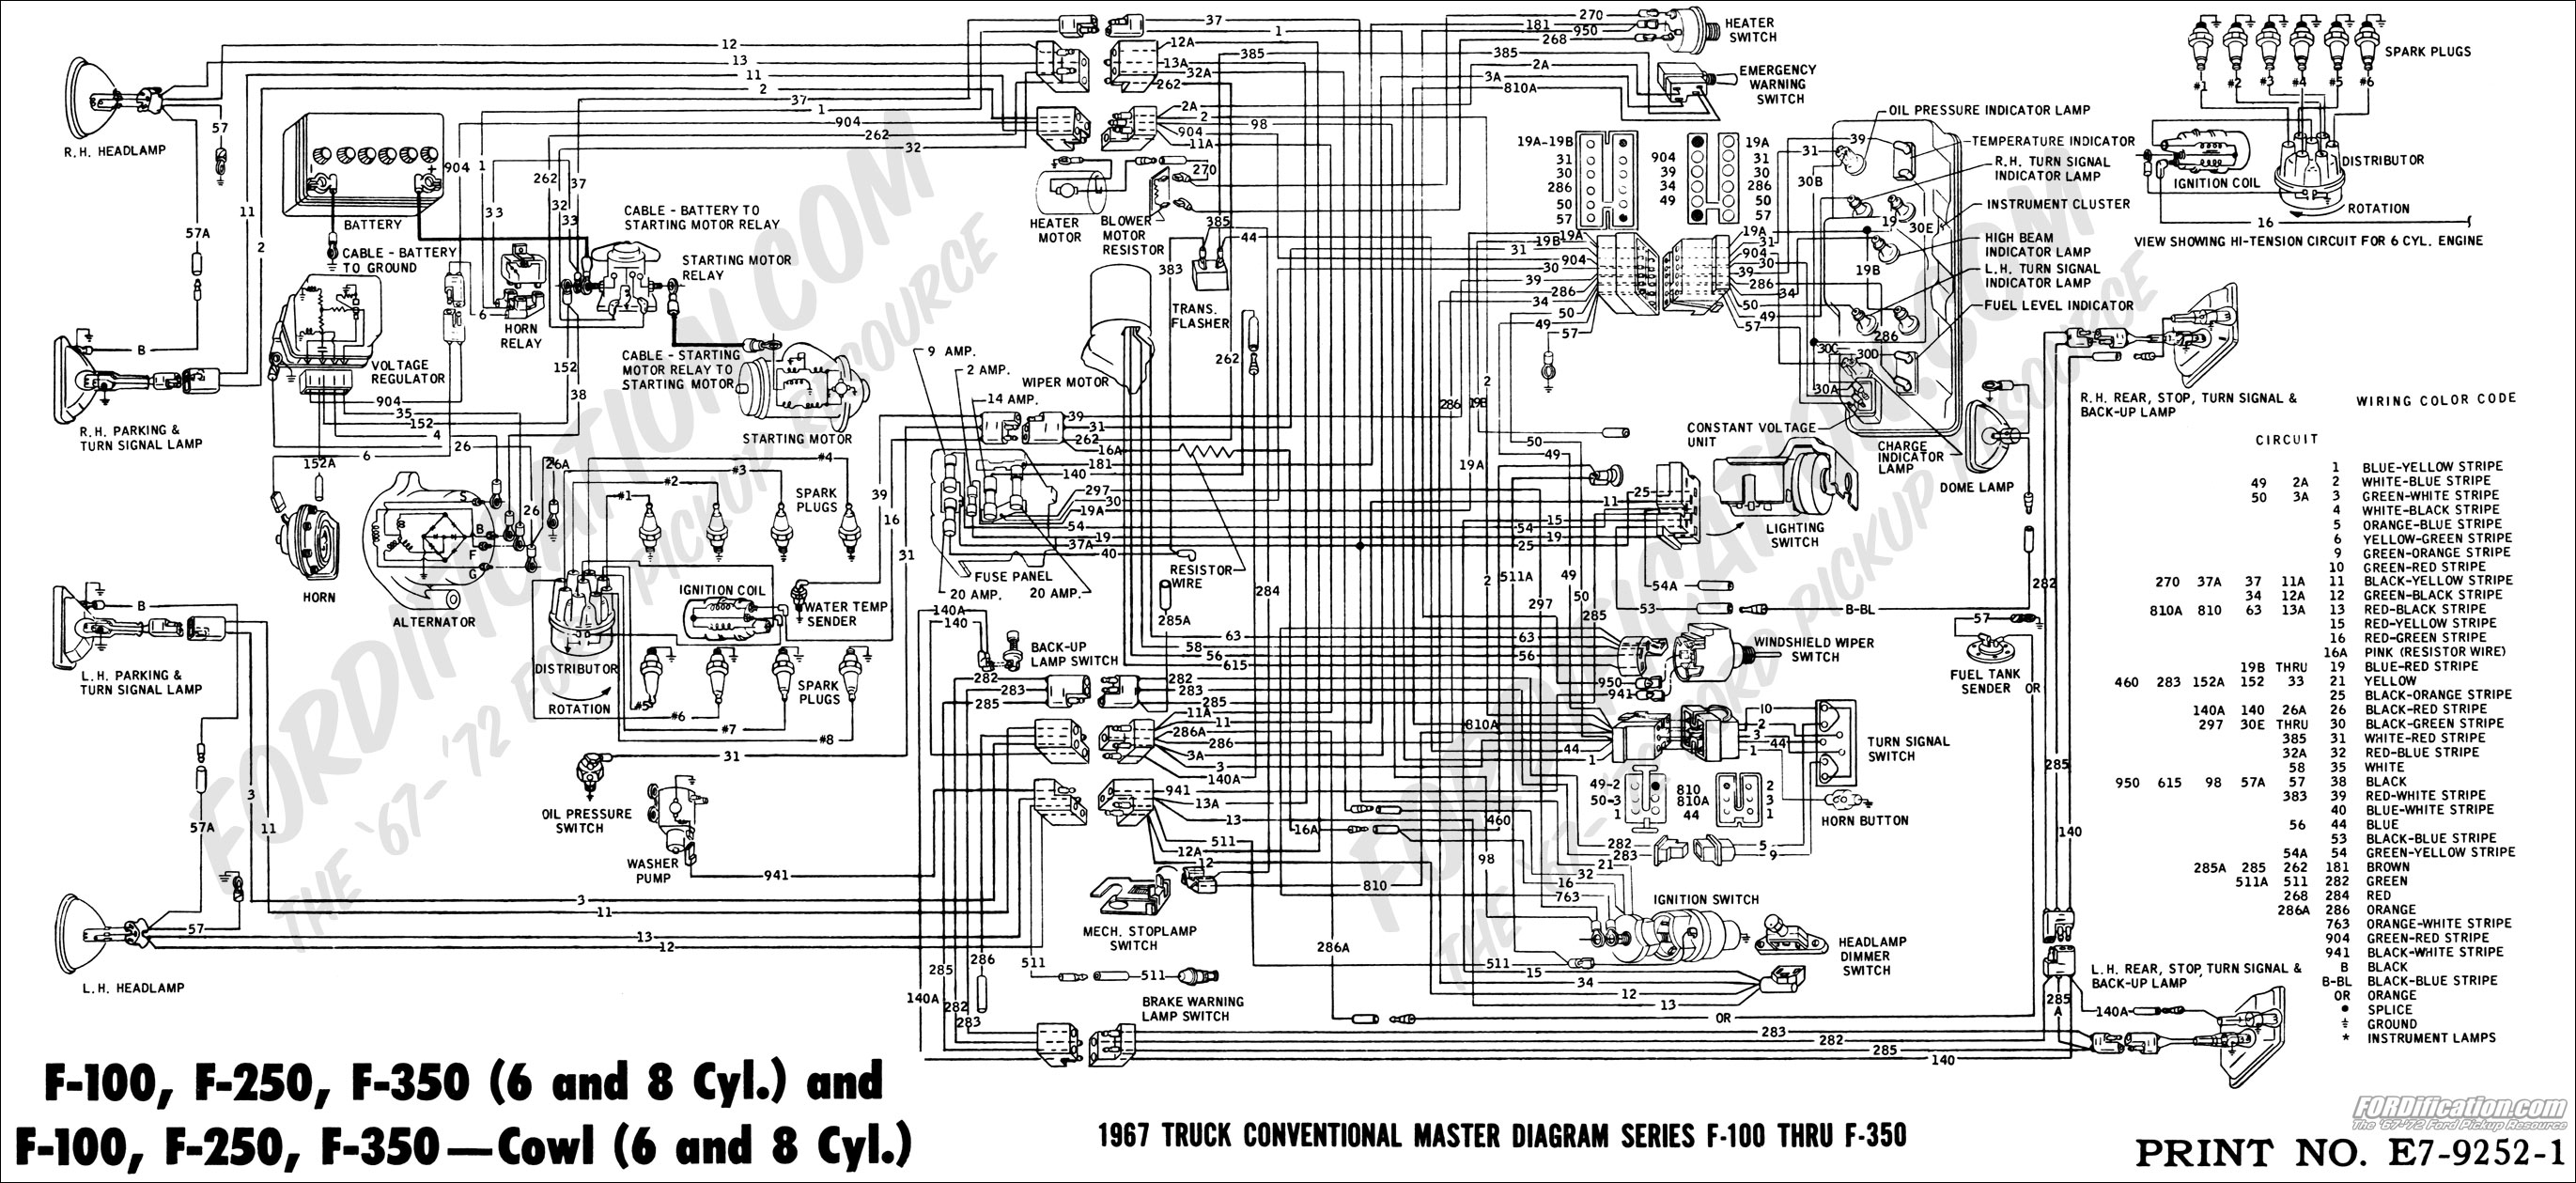 67masterdiagram ford truck technical drawings and schematics section h wiring 2006 ford f150 ignition wiring diagram at mifinder.co